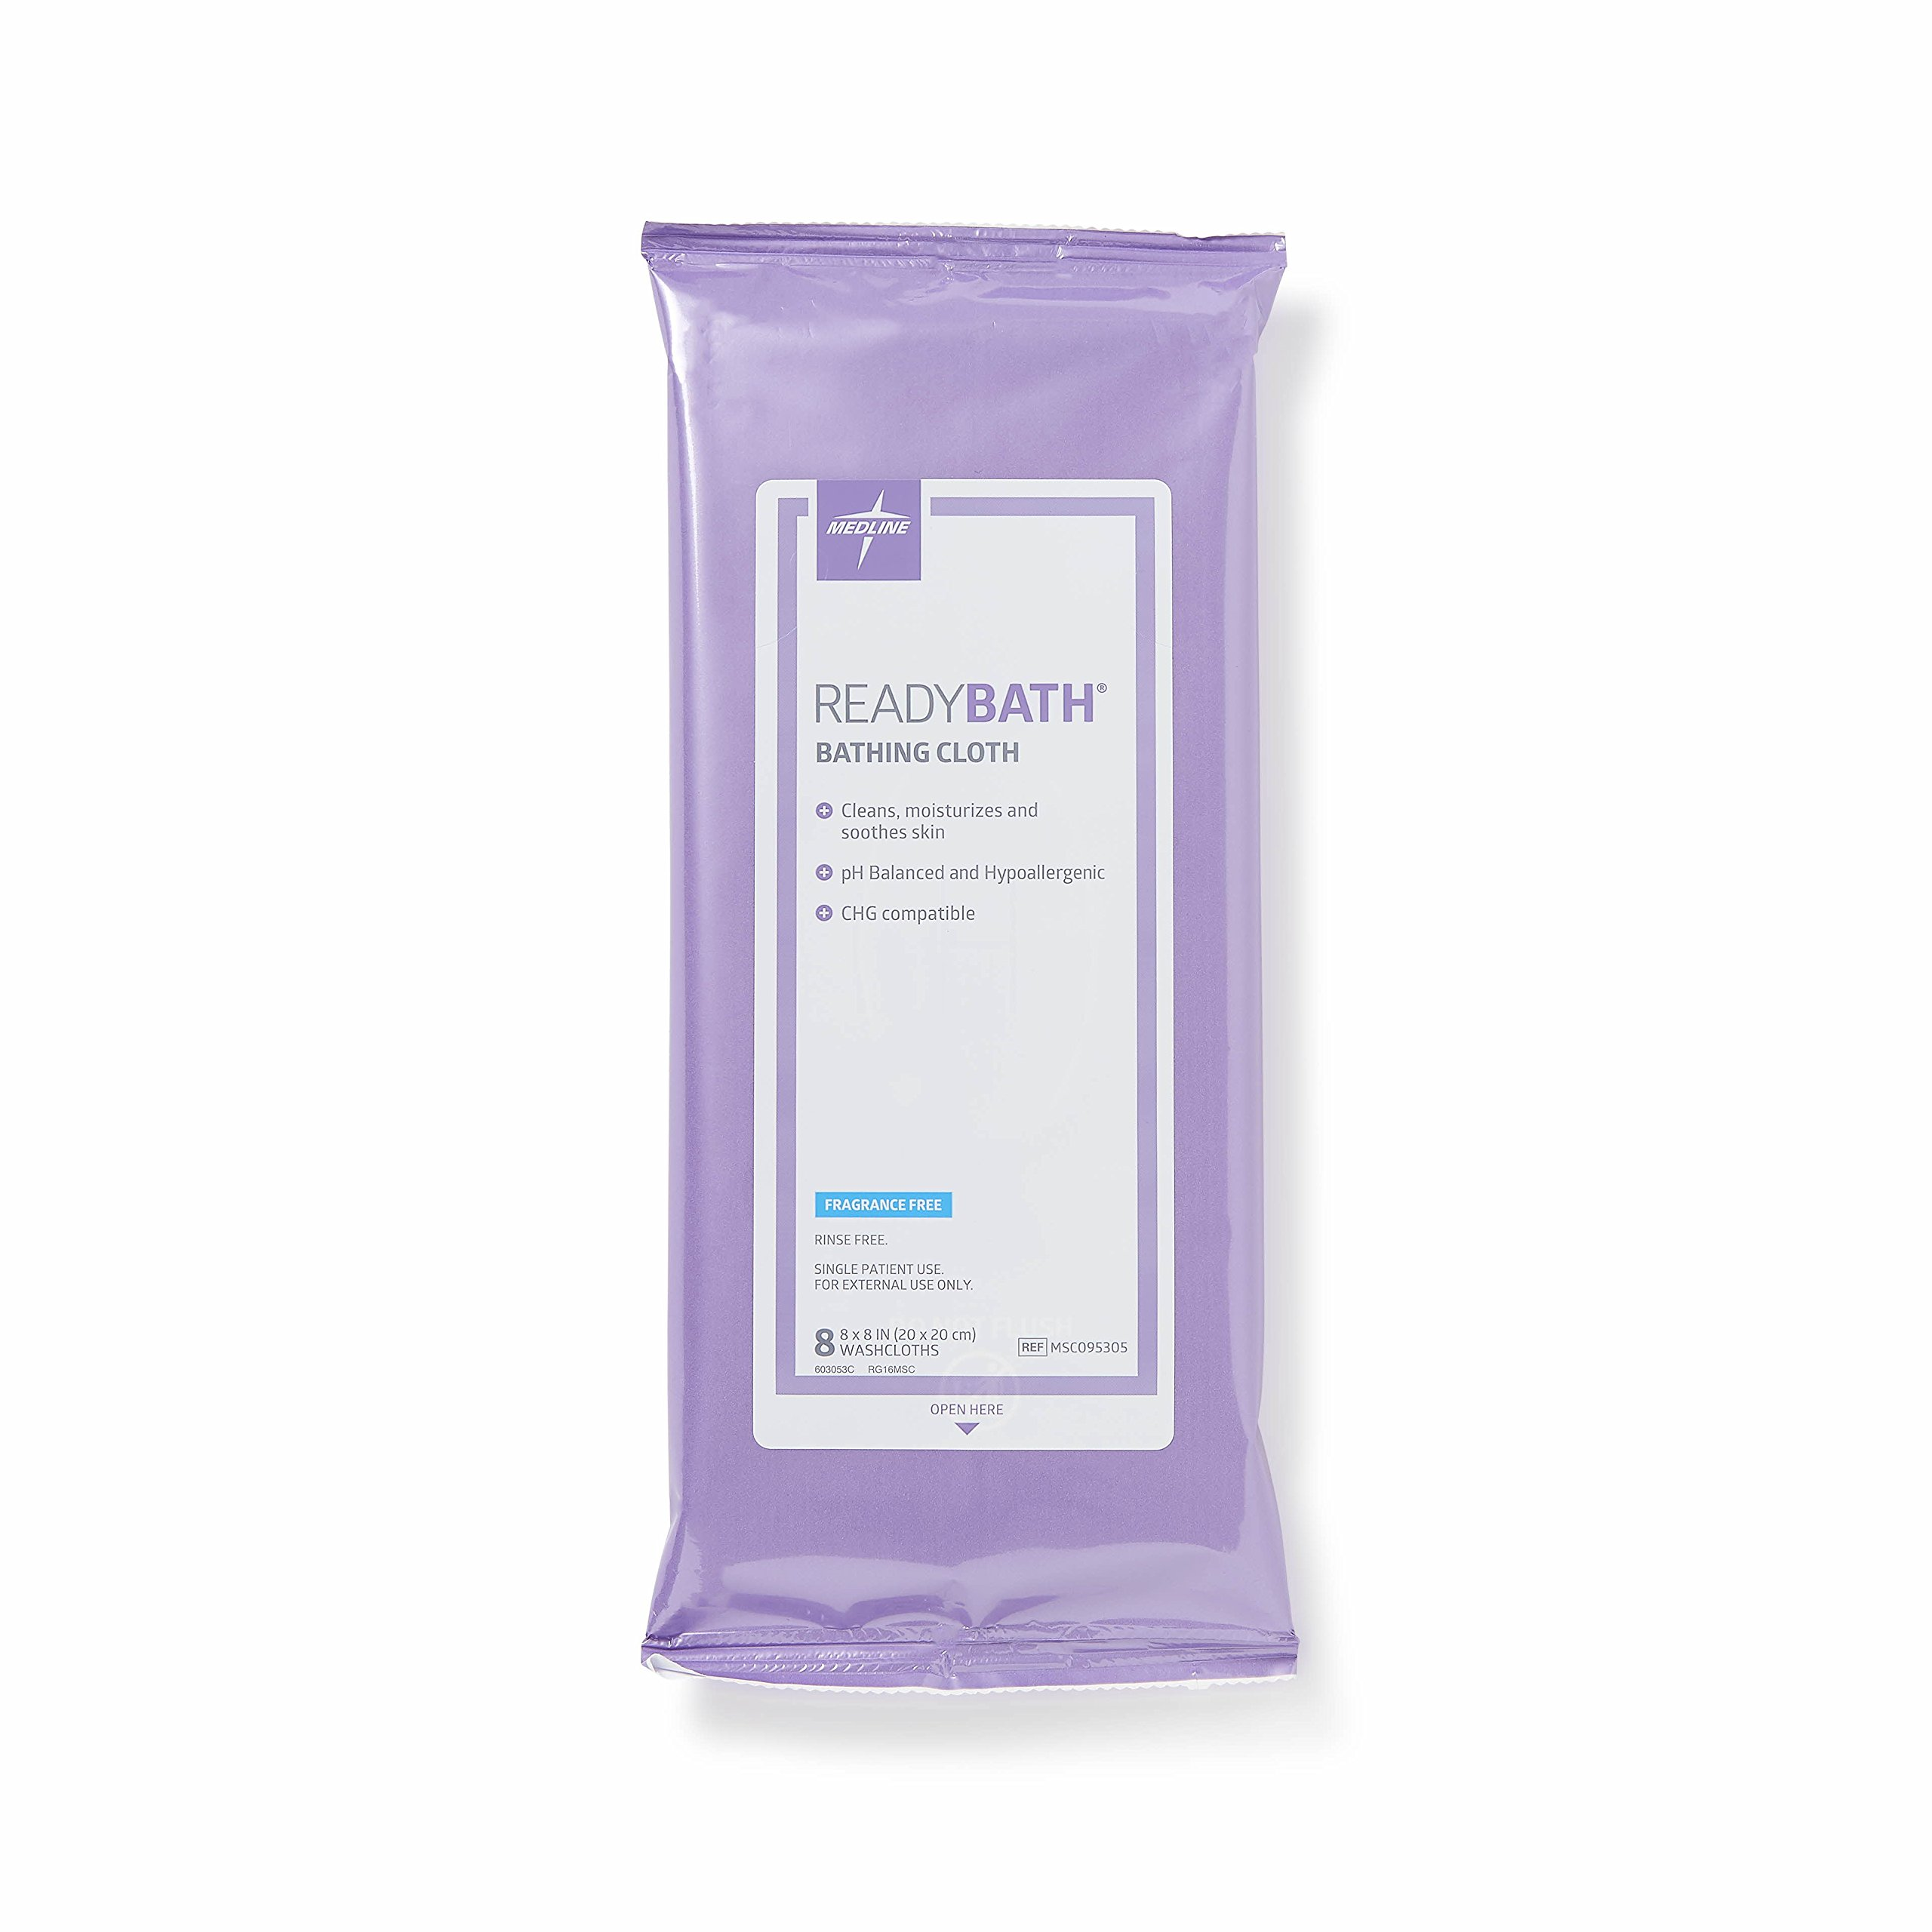 Medline - MSC095305 ReadyBath Unscented Body Cleansing Cloths, Standard Weight Wipes (8 Count Pack, 30 Packs)